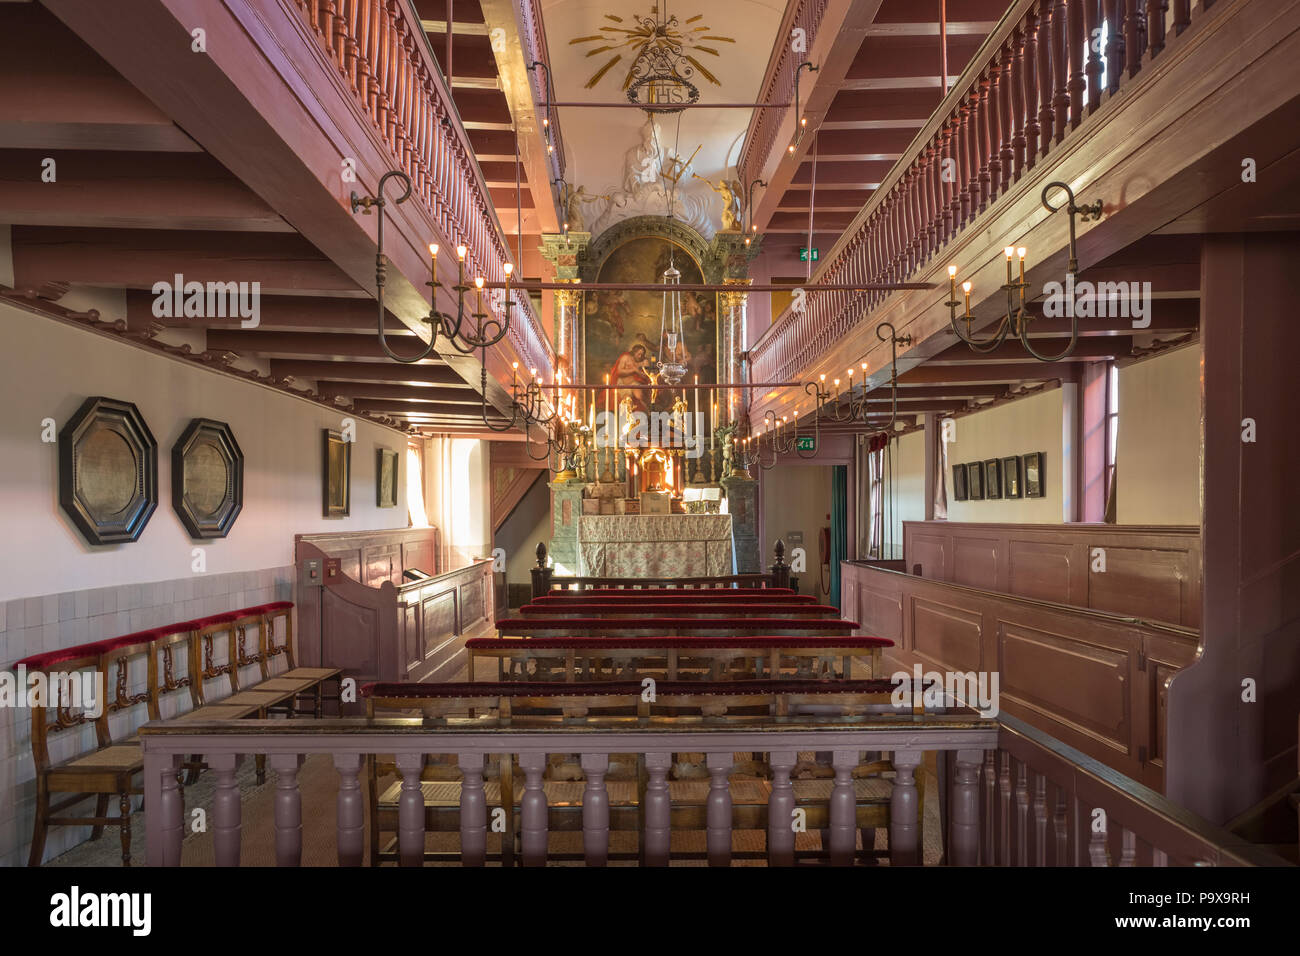 Ons Lieve Heer op Solder, Our Lord in the Attic, a secret house Church spanning three townhouses in Amsterdam, Netherlands, Holland, Europe - Stock Image